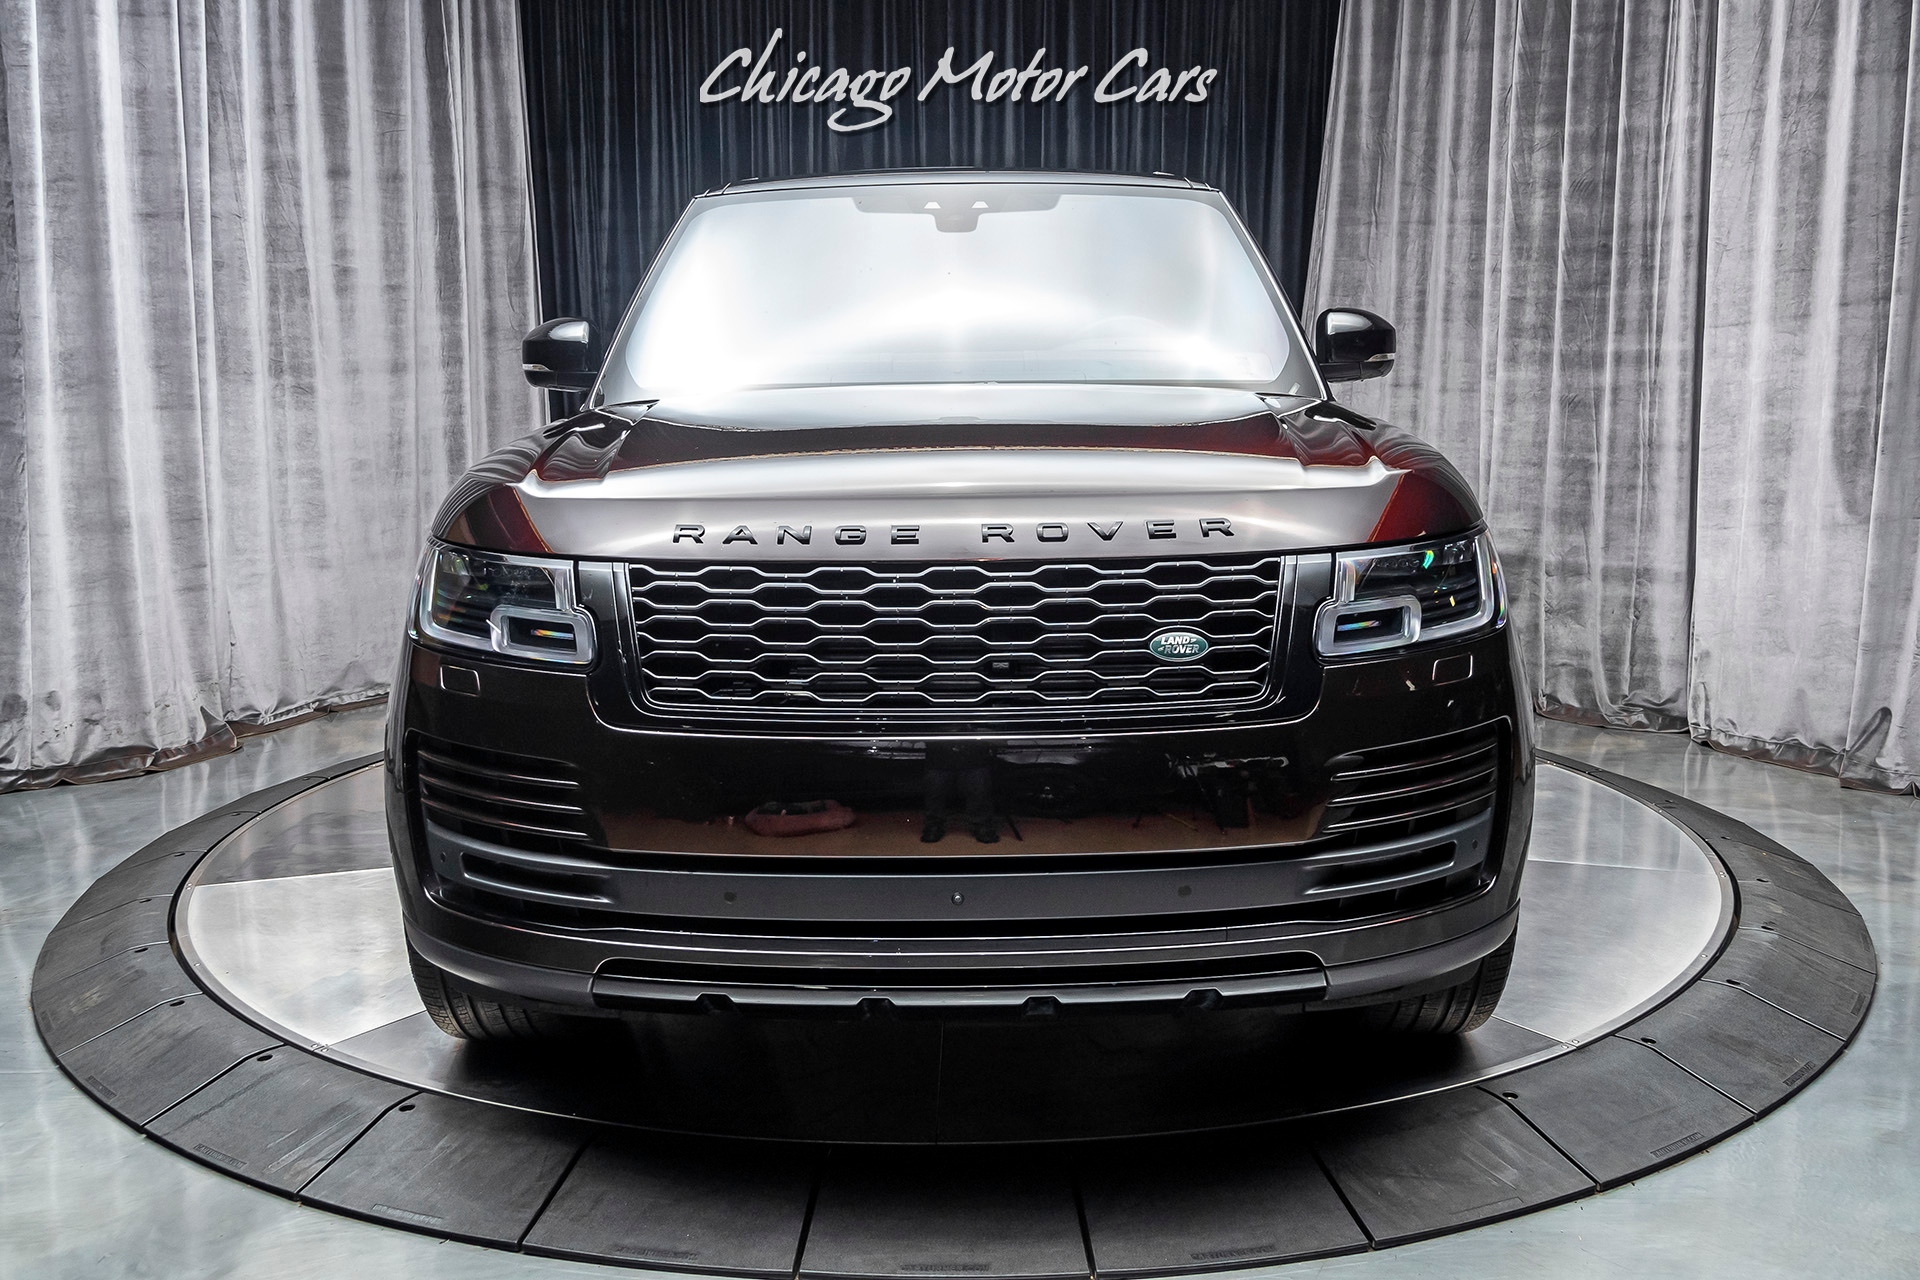 Used-2019-Land-Rover-Range-Rover-Supercharged-Only-11k-Miles-SUV-Loaded-RARE-Color-Combo